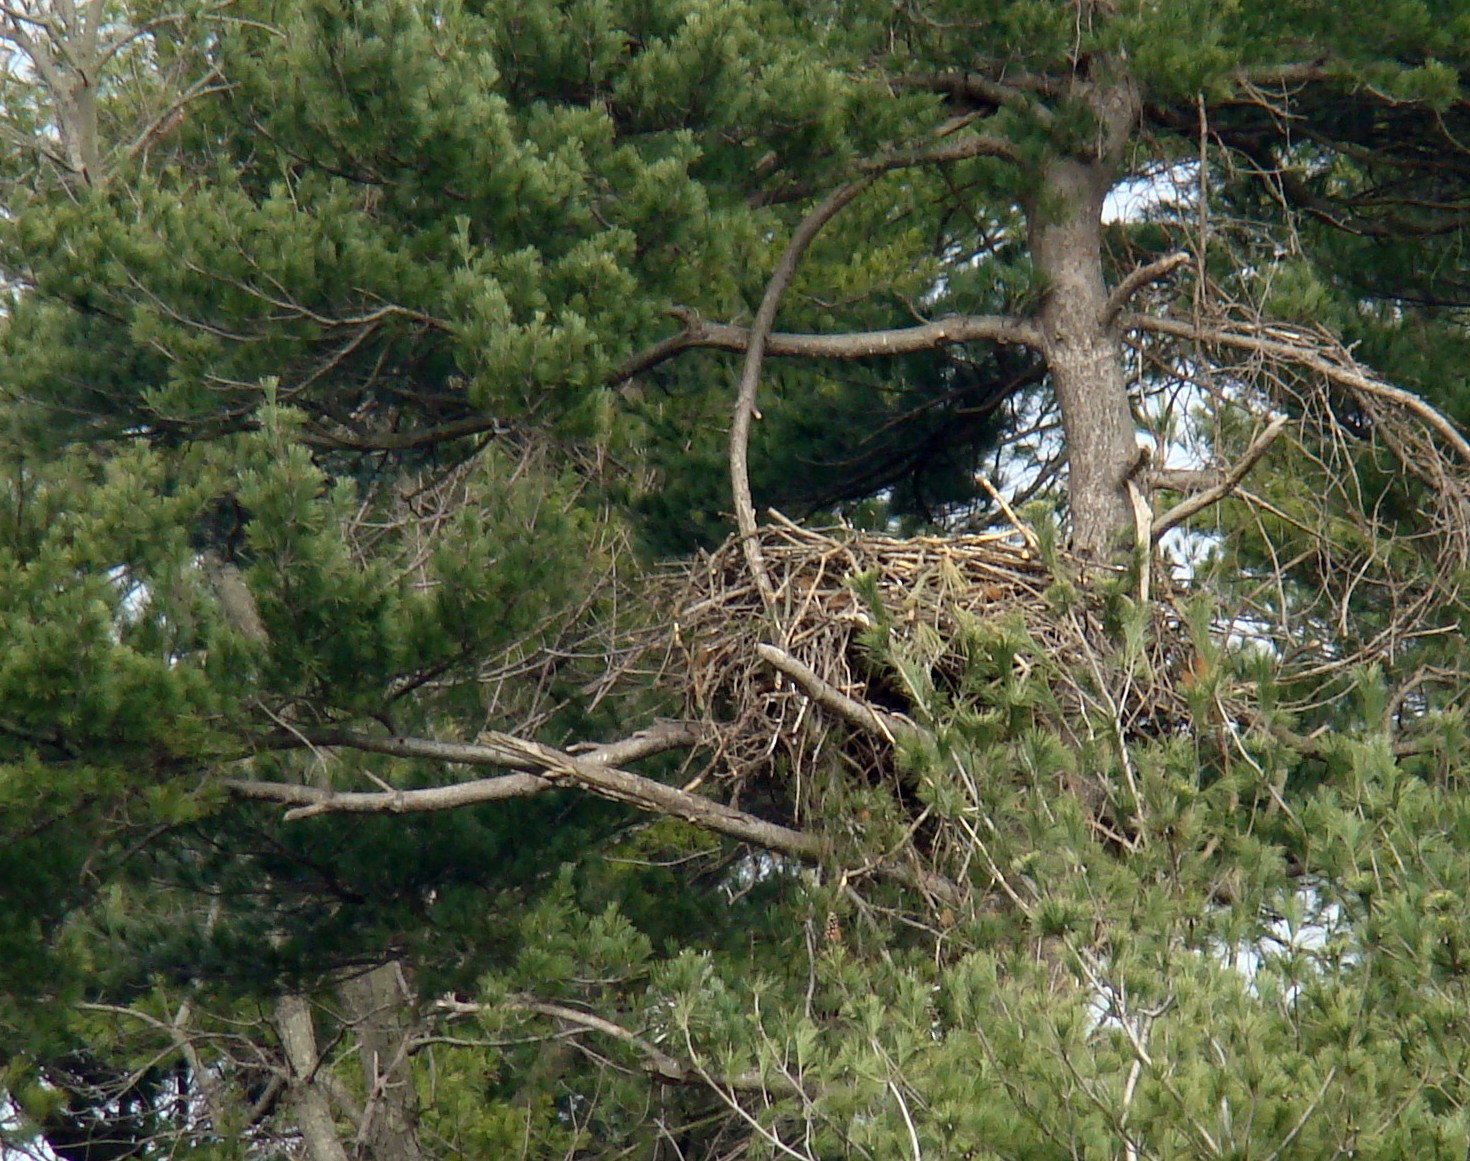 Active Bald Eagle nest at Hoopes Reservoir.  The eagle is not visible, but it was crouched down, incubating.